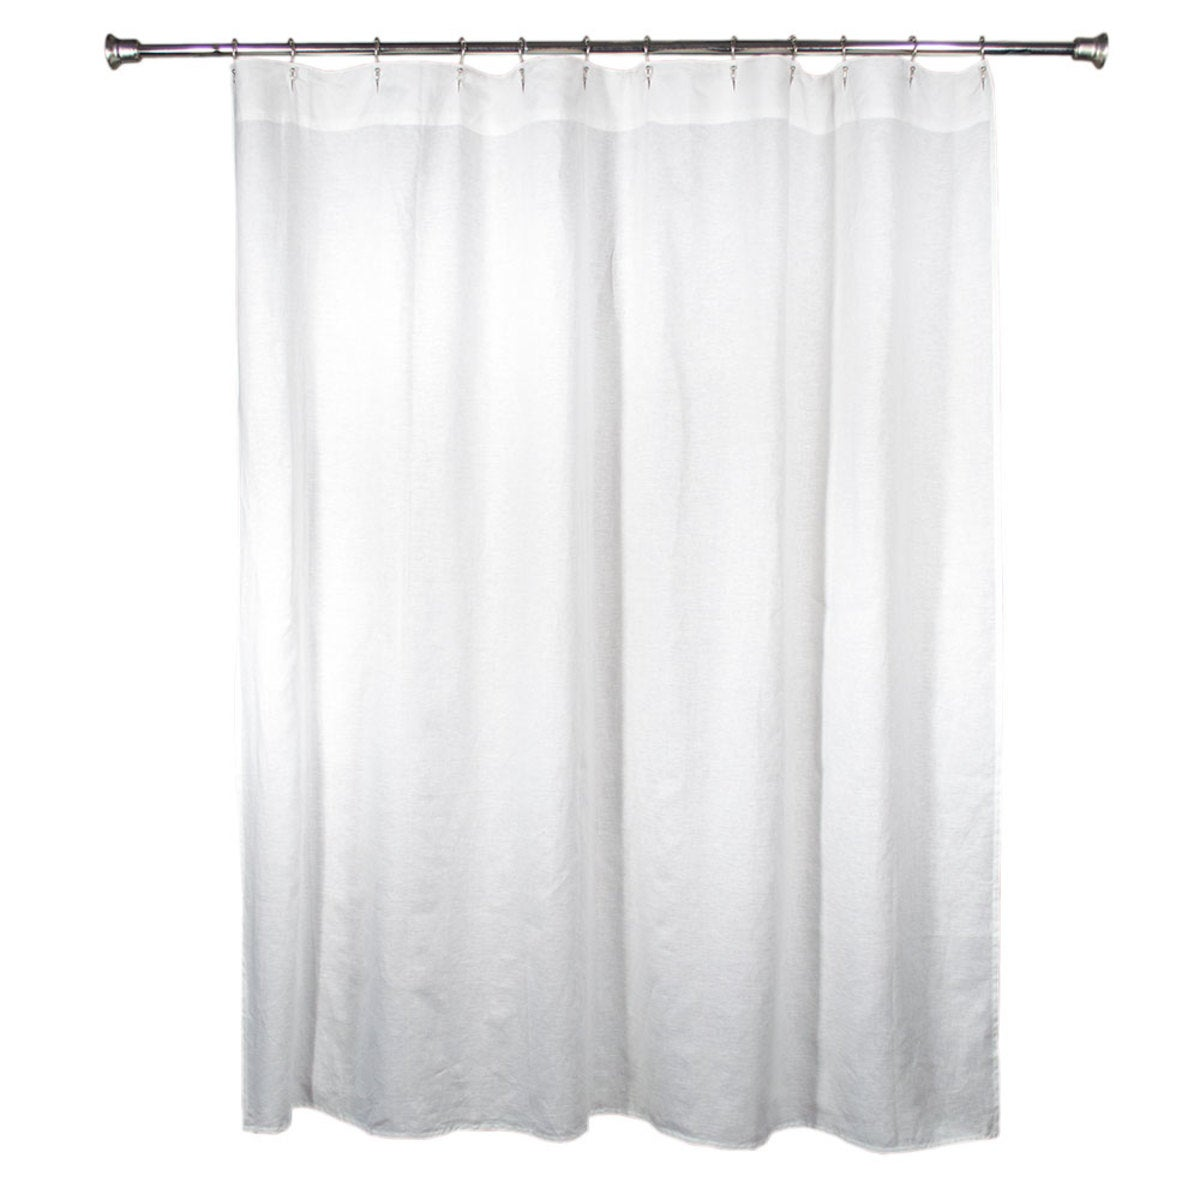 100% Pure Linen Shower Curtain - White